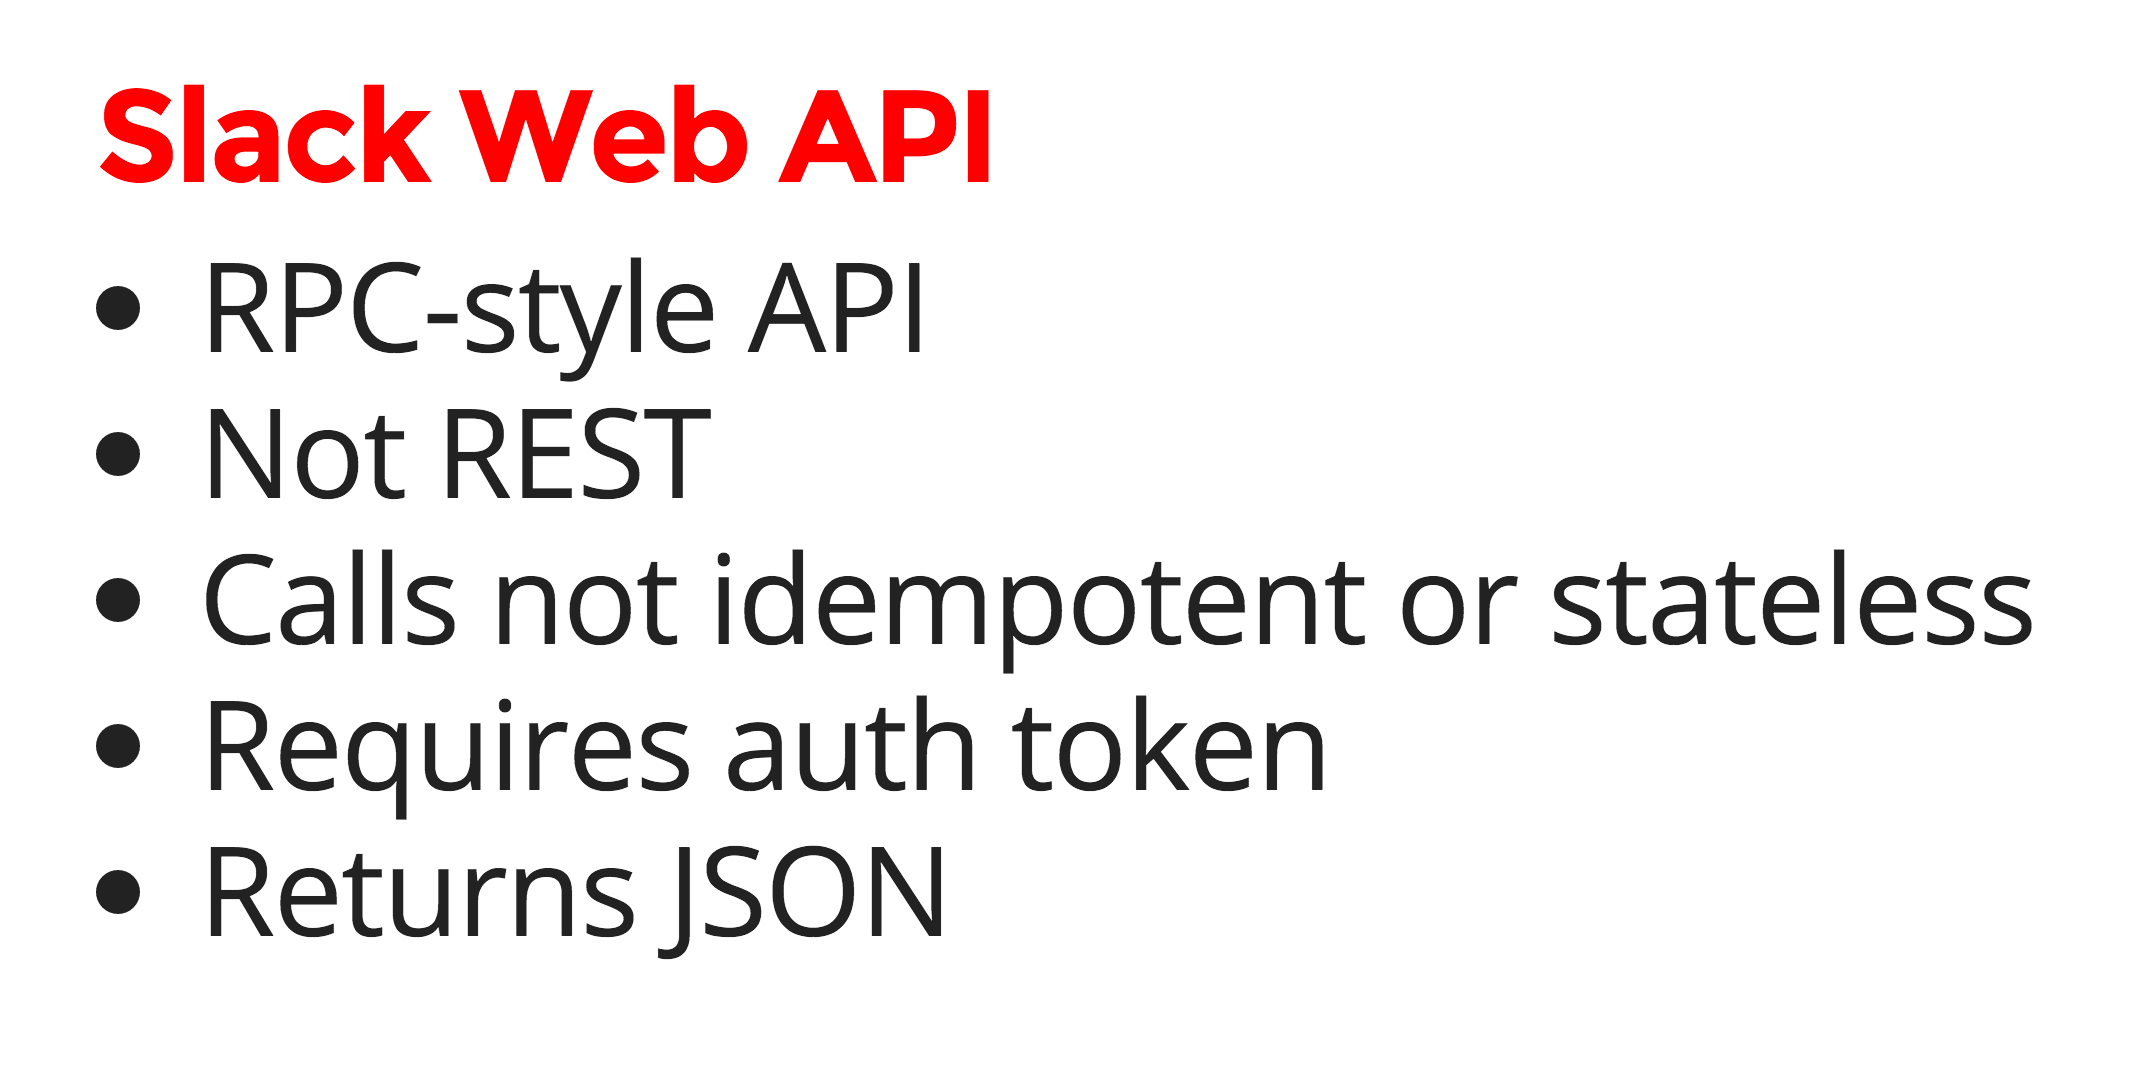 More information about the Slack web API.